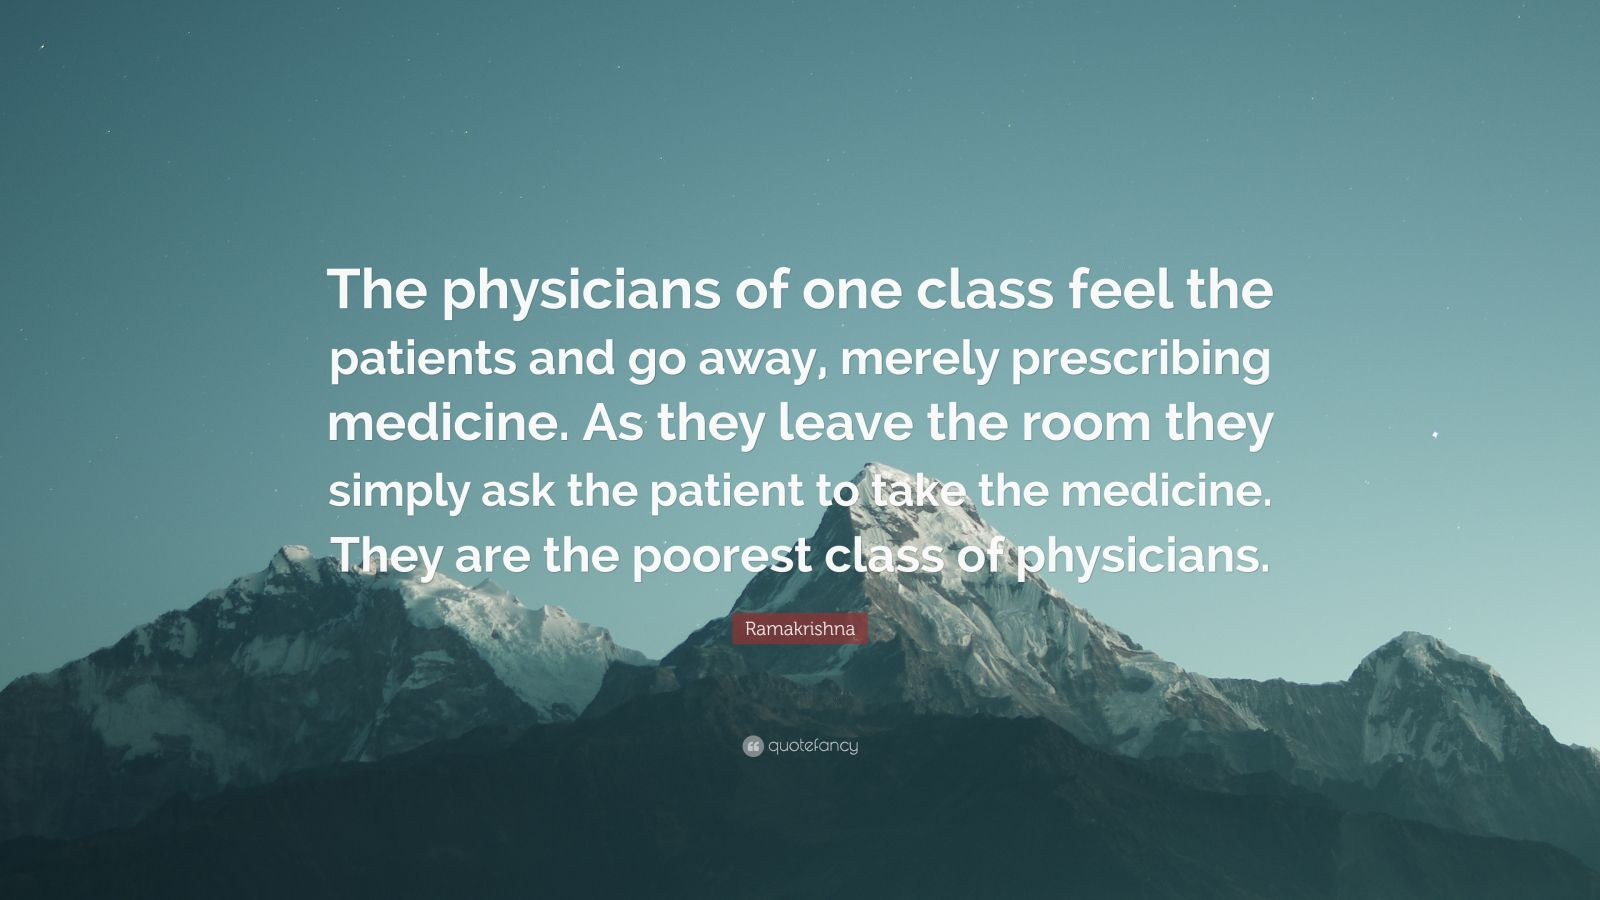 """Ramakrishna Quote: """"The physicians of one class feel the patients and go away, merely prescribing medicine. As they leave the room they simply ask the patient to take the medicine. They are the poorest class of physicians."""""""